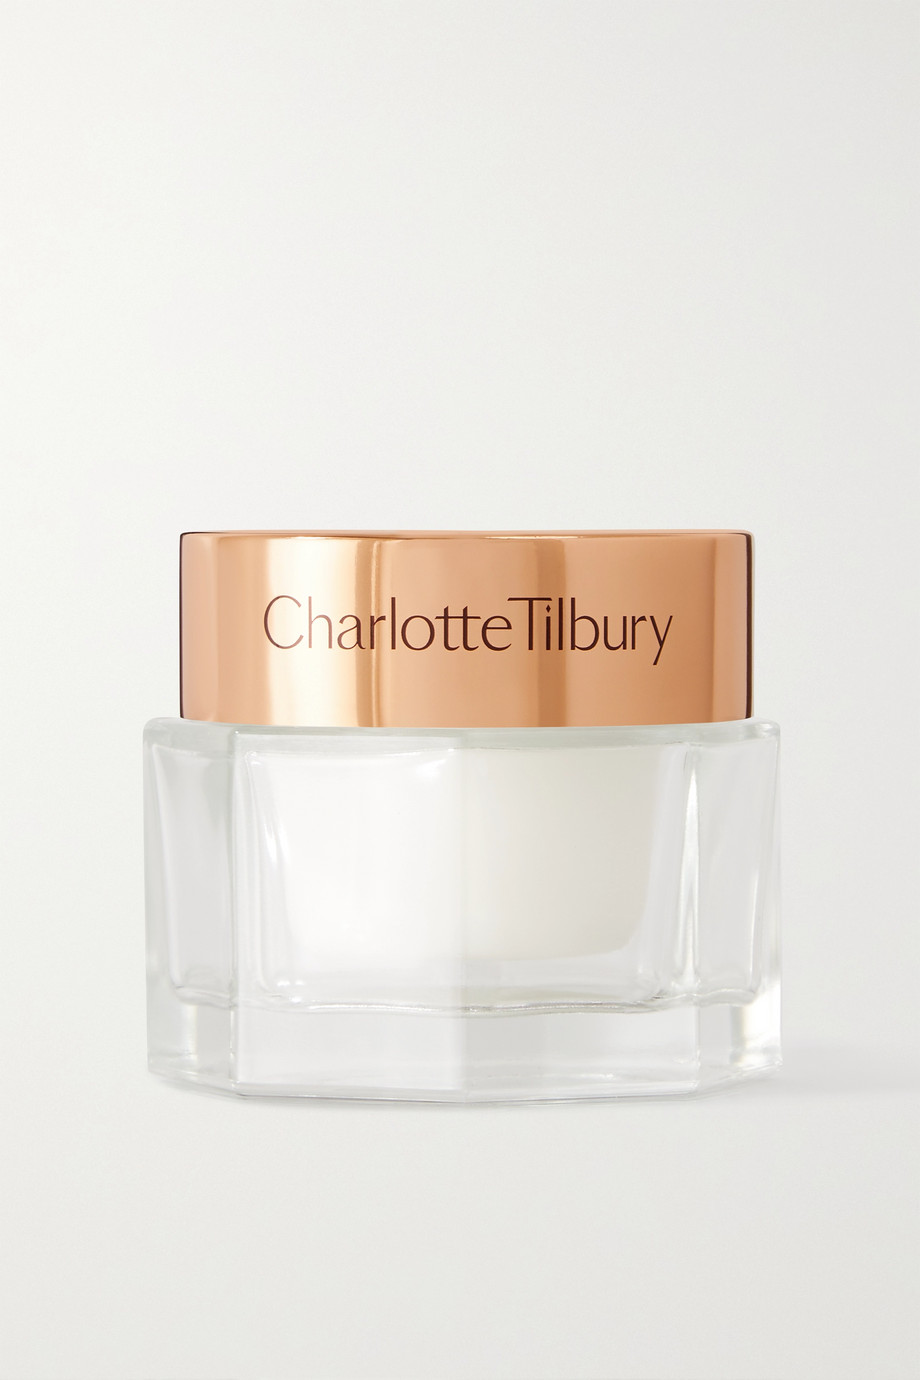 Charlotte Tilbury Charlotte's Magic Cream Moisturizer, 50ml